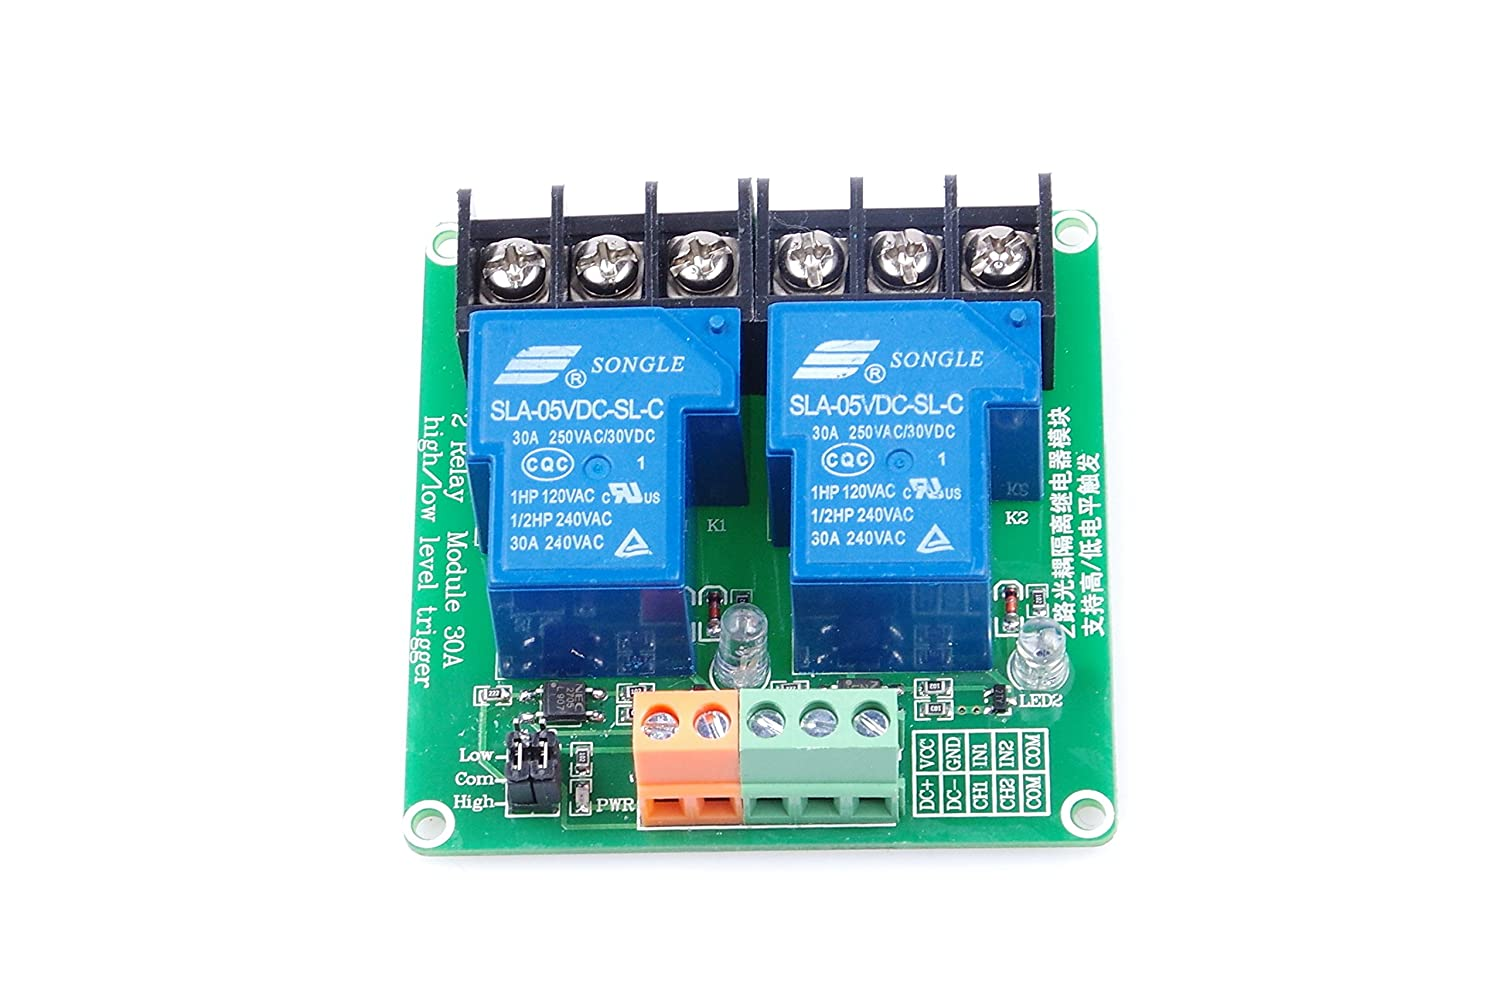 2 Channel Relay Module High Low Level Triggering Dc5v To Dc30v Converter By 74hc14 Optocoupler Isolation Load 30a Dc 30v Ac 250v For Plc Automation Control Industrial System